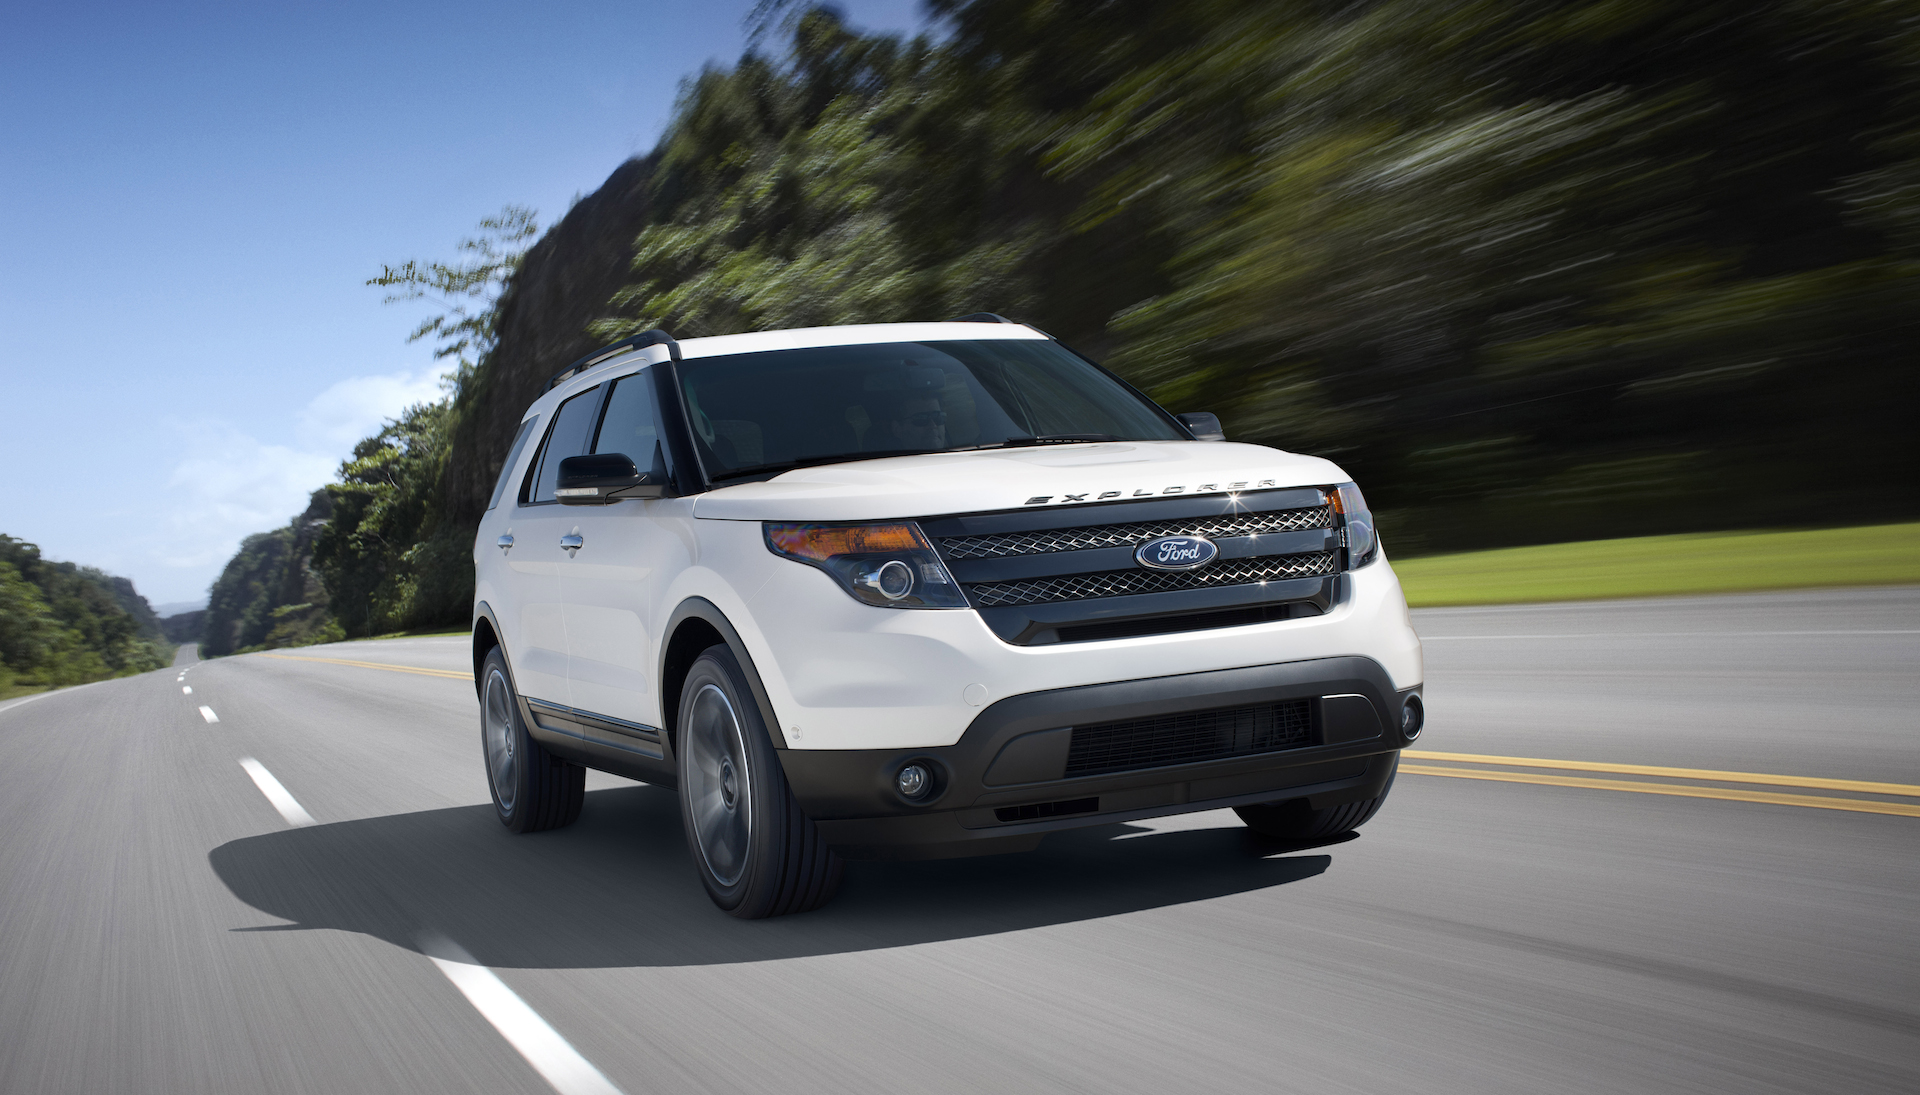 2015 ford explorer safety review and crash test ratings the car connection - Ford Explorer 2015